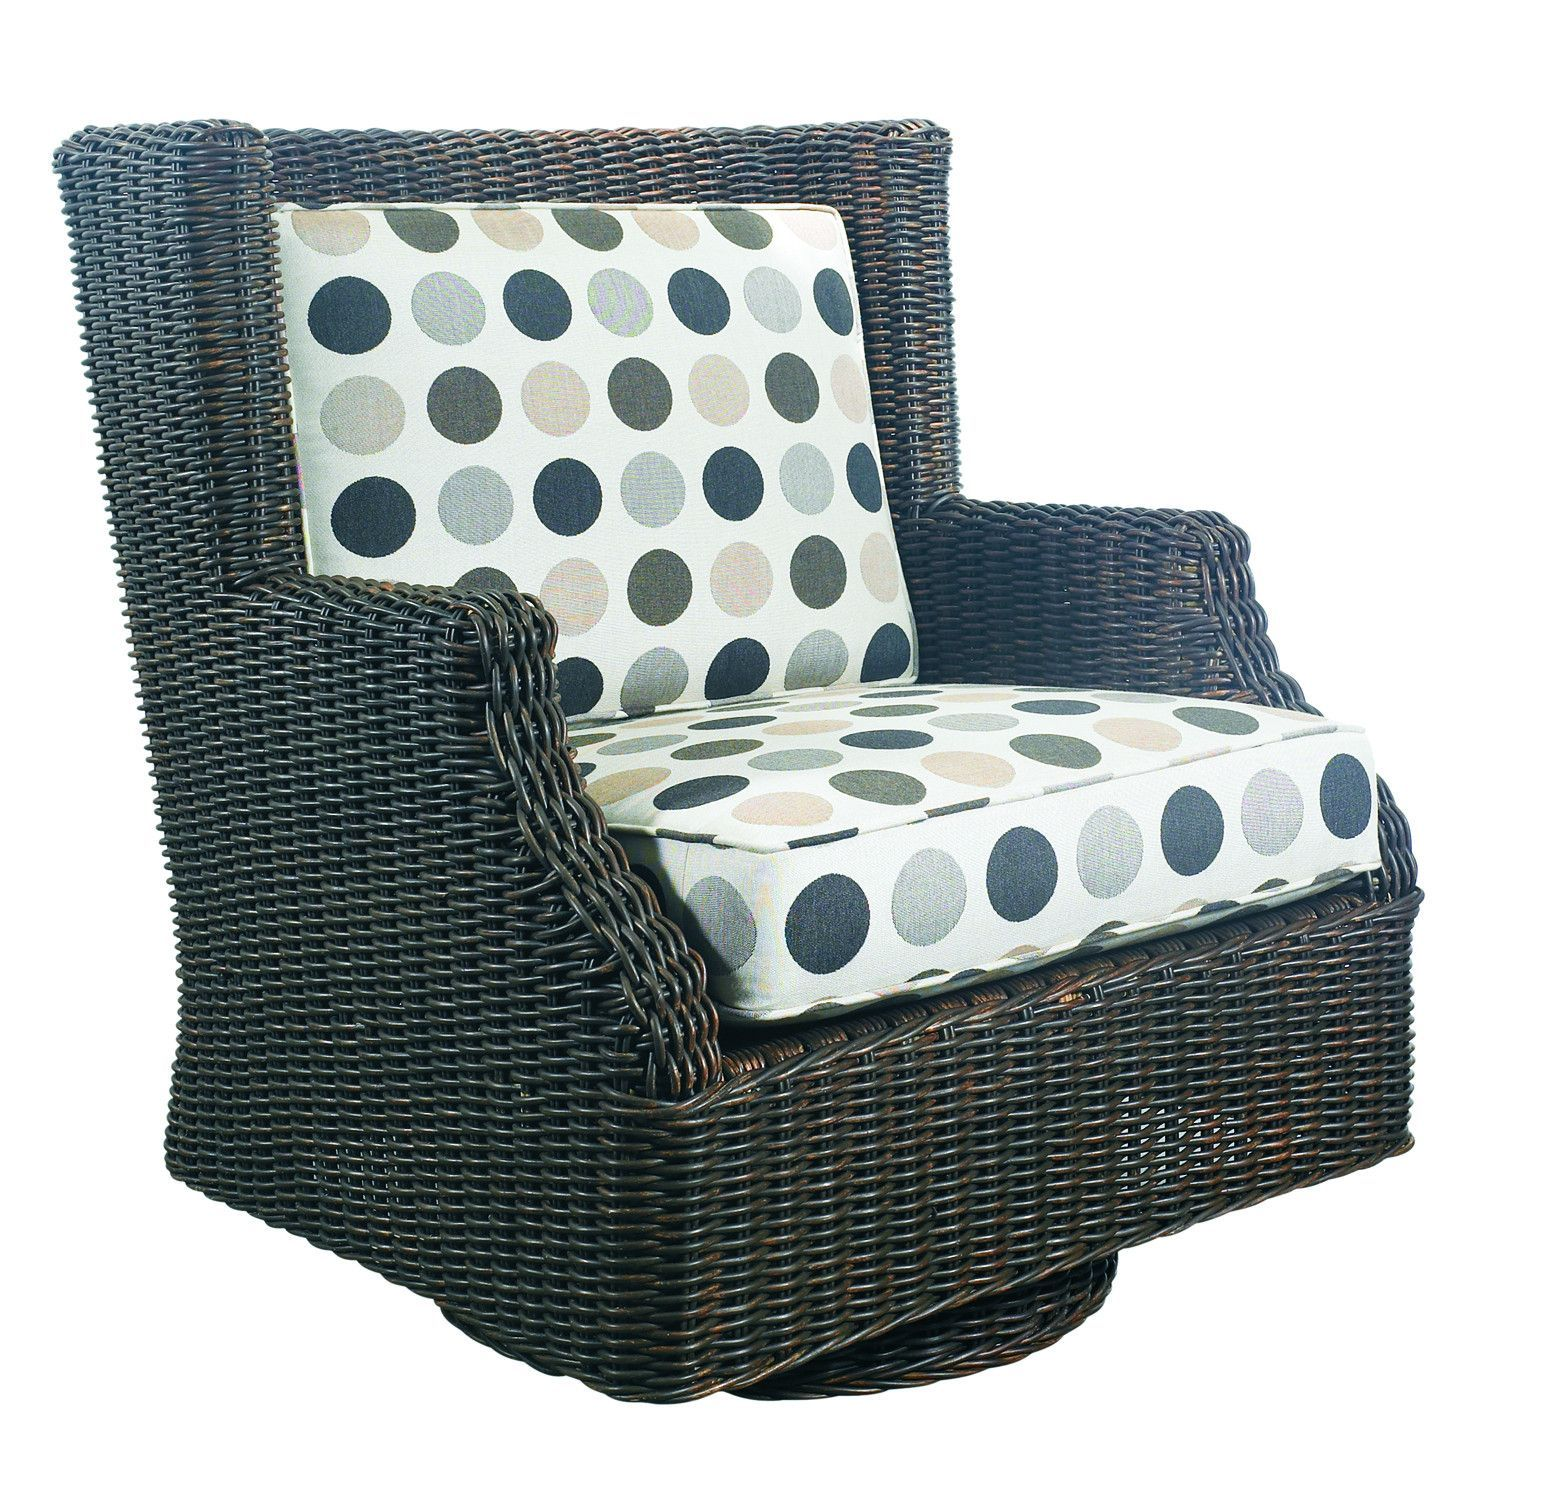 Terrace Outdoor Swivel Rocking Chair Furniture